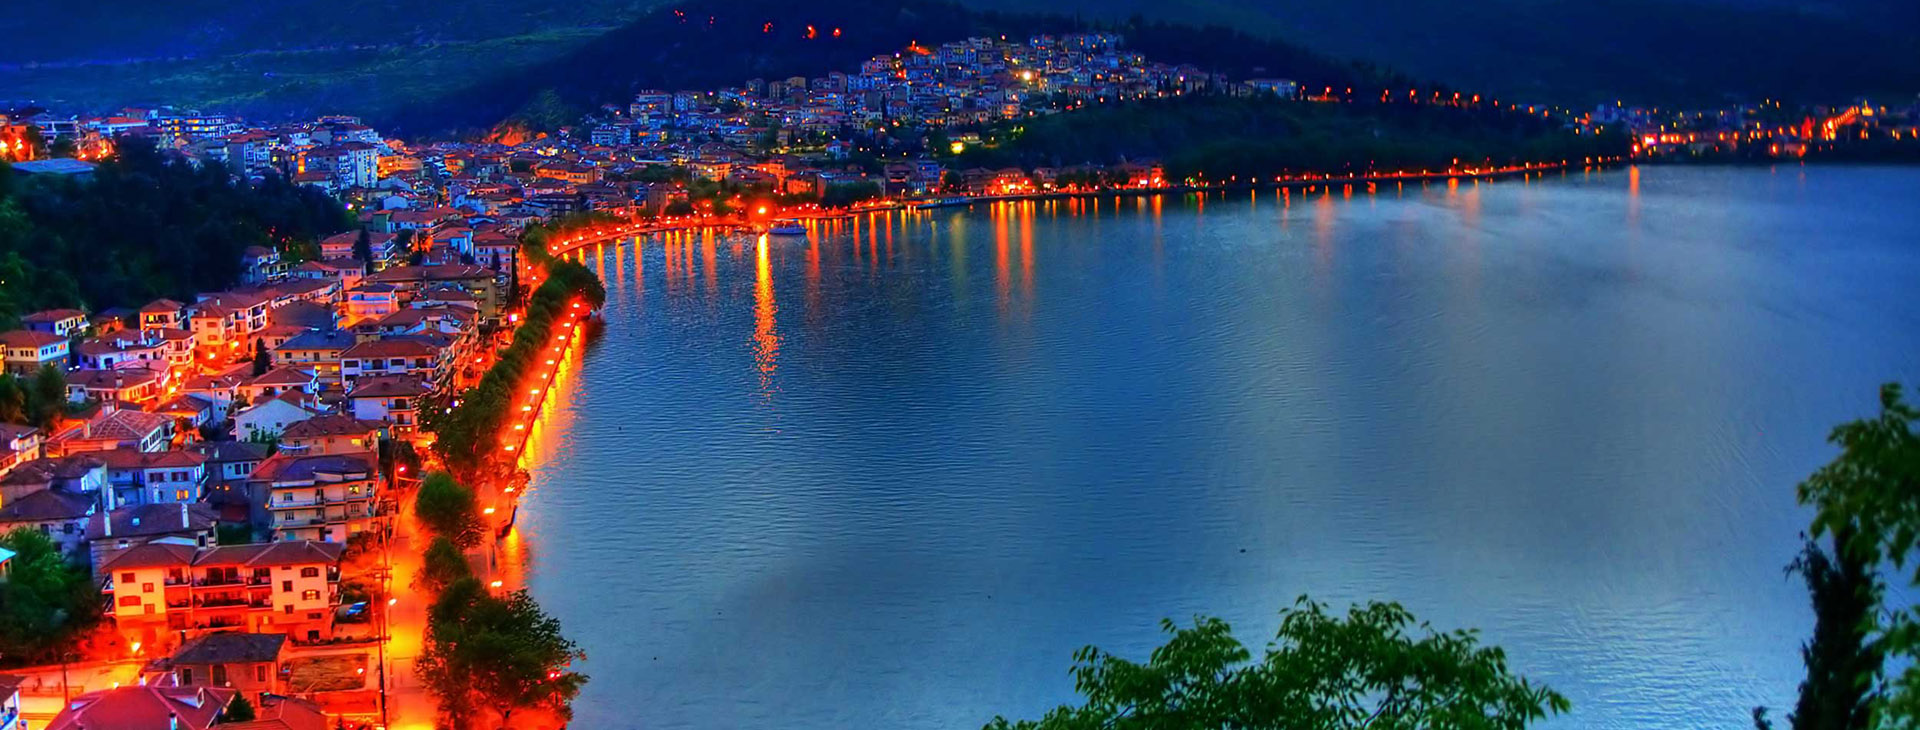 Kastoria town and lake